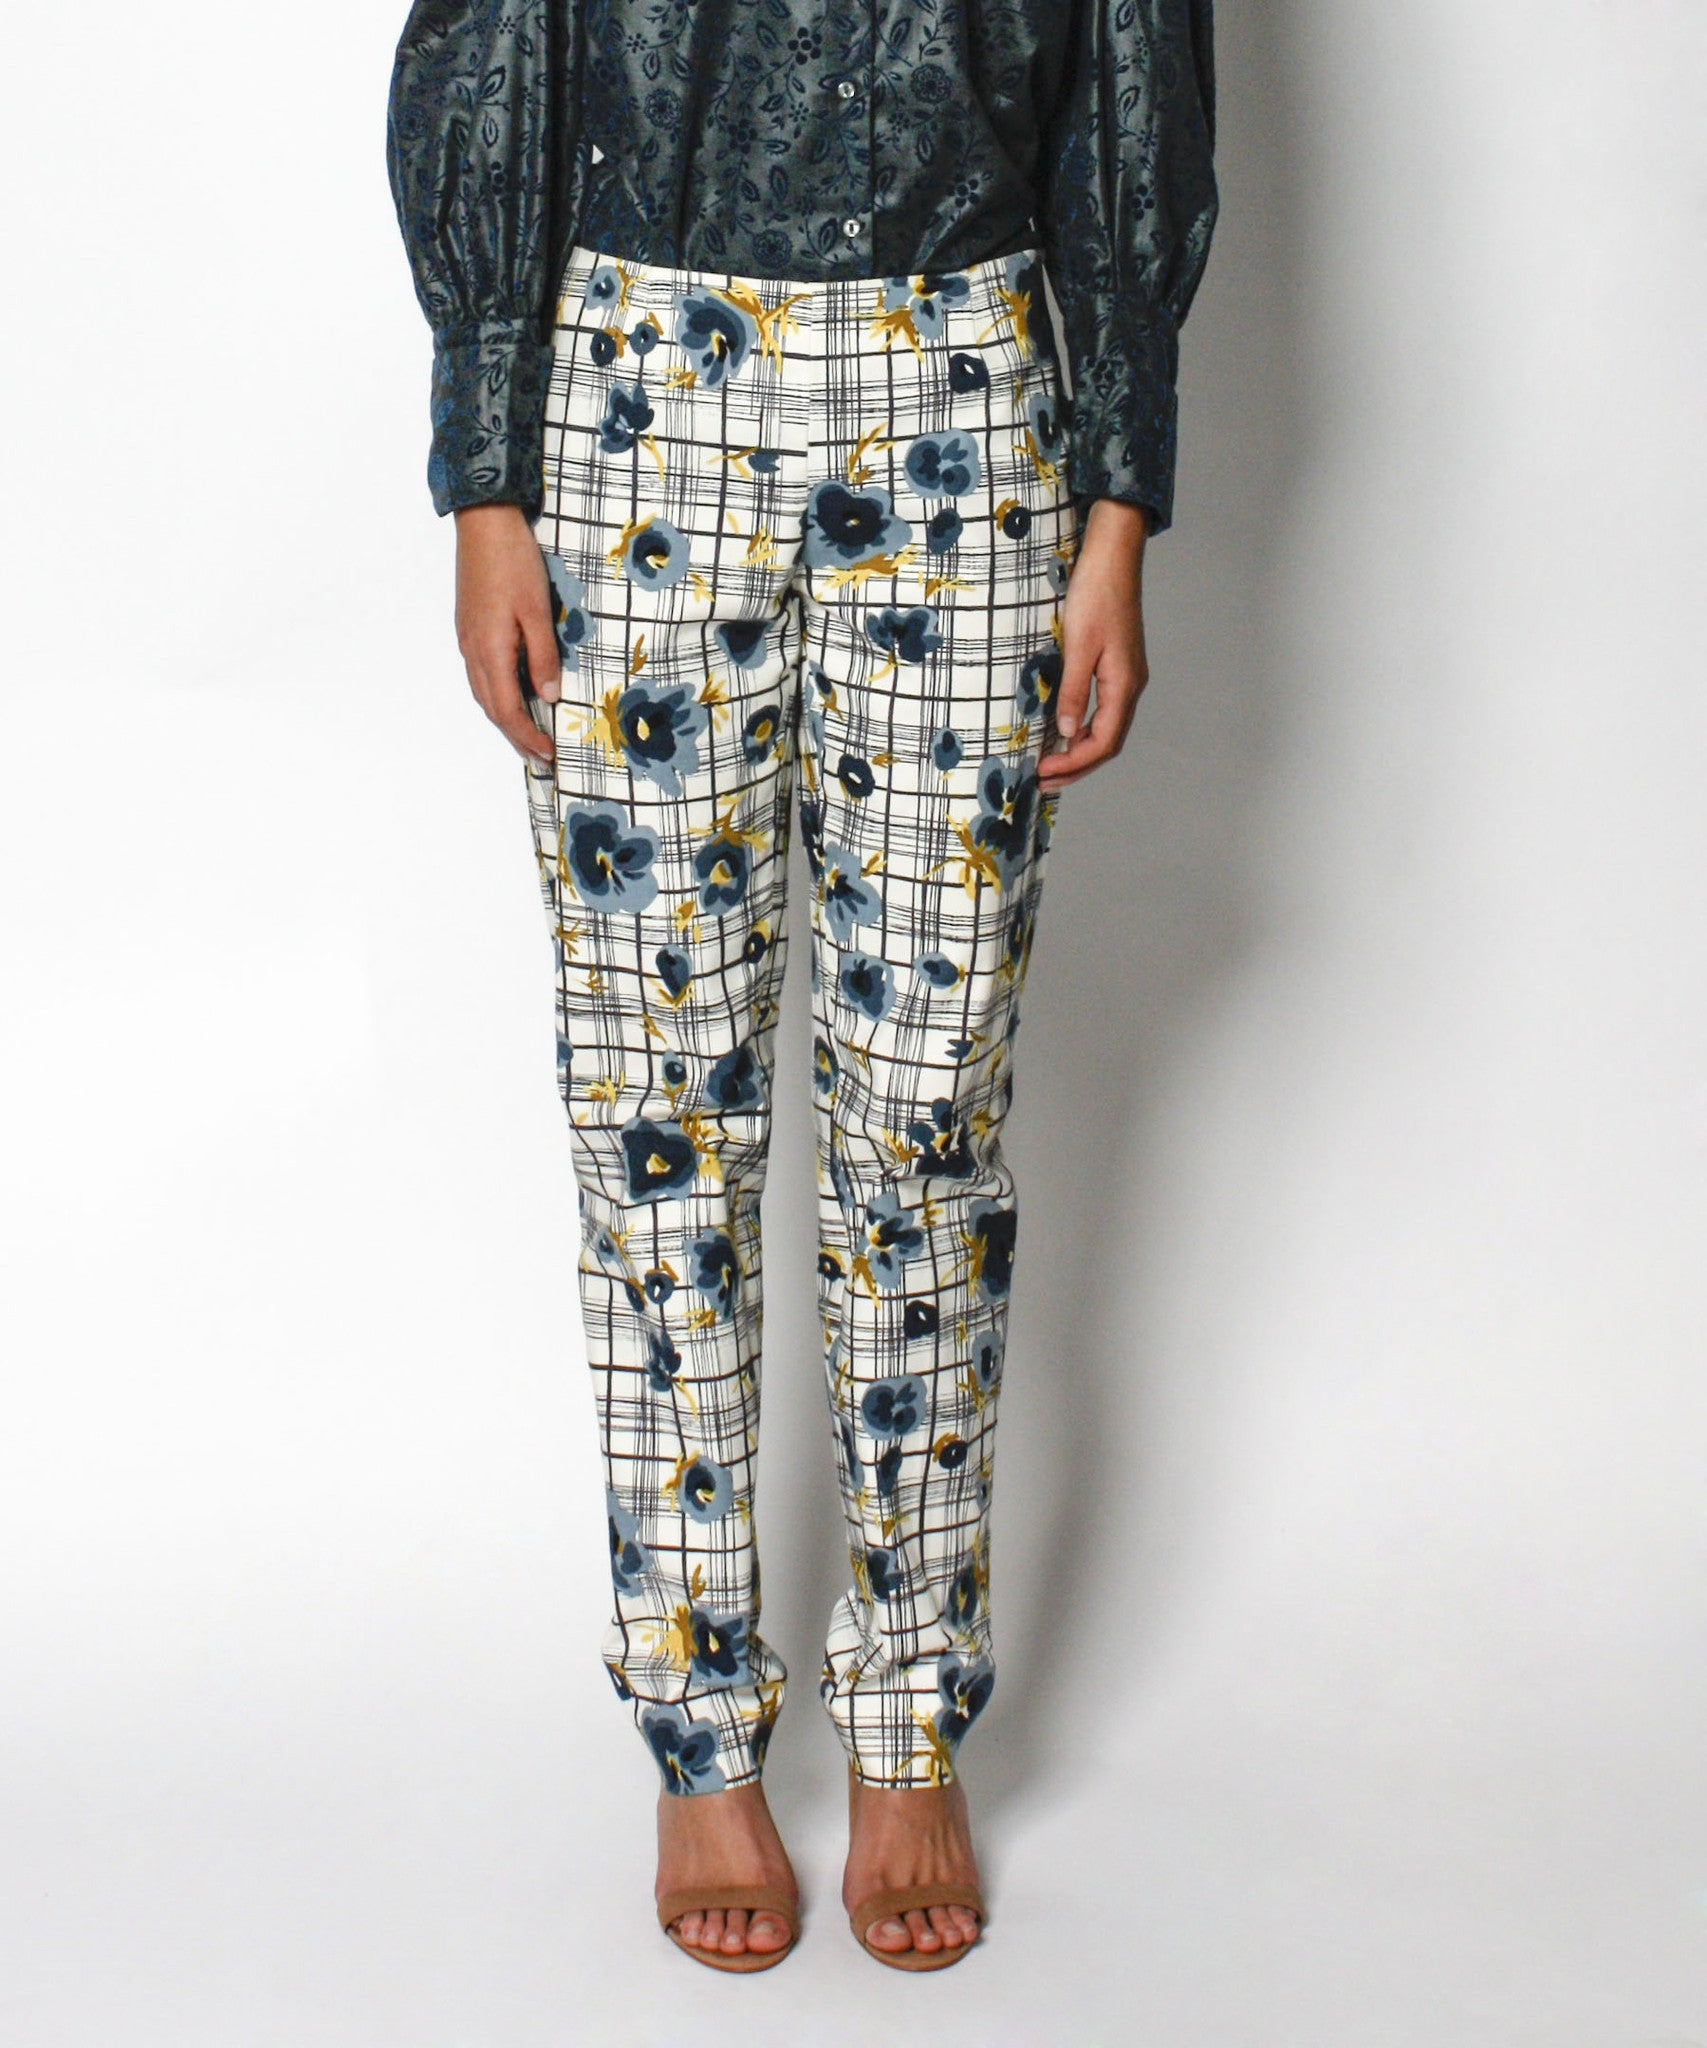 Moschino Plaid and Floral Print Cotton Pants - C.Madeleine's